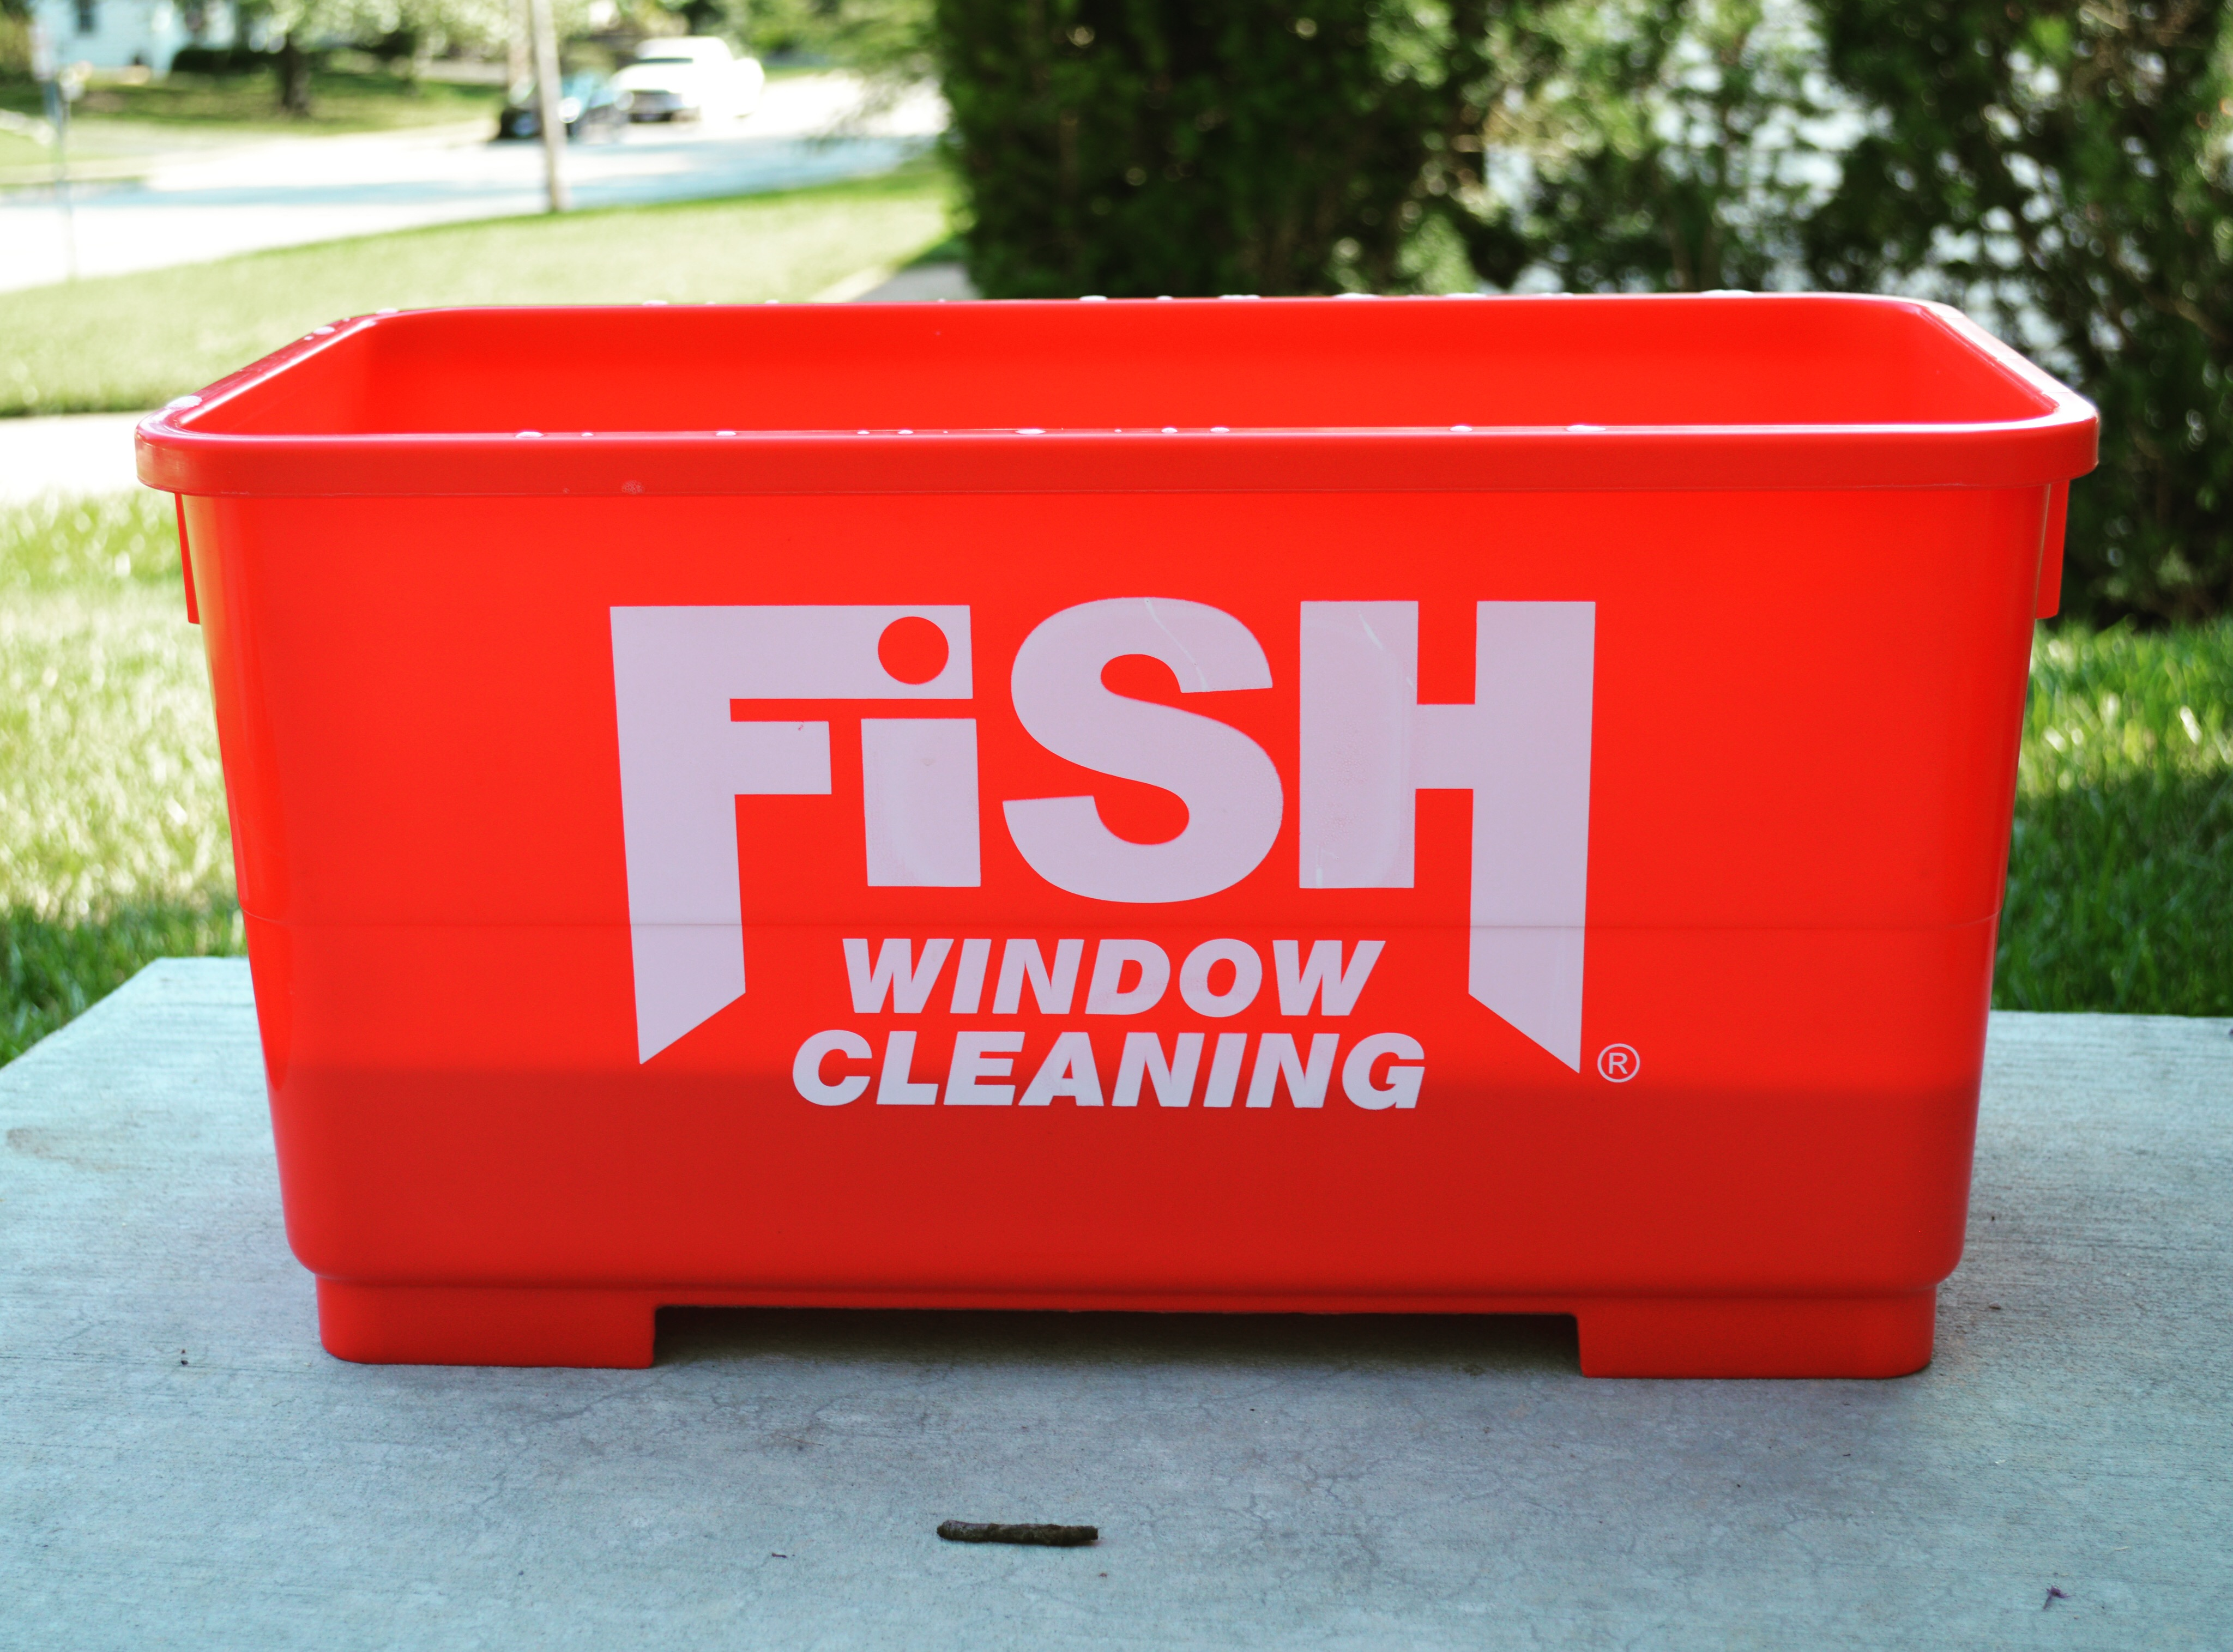 Fish Window Cleaning Bucket